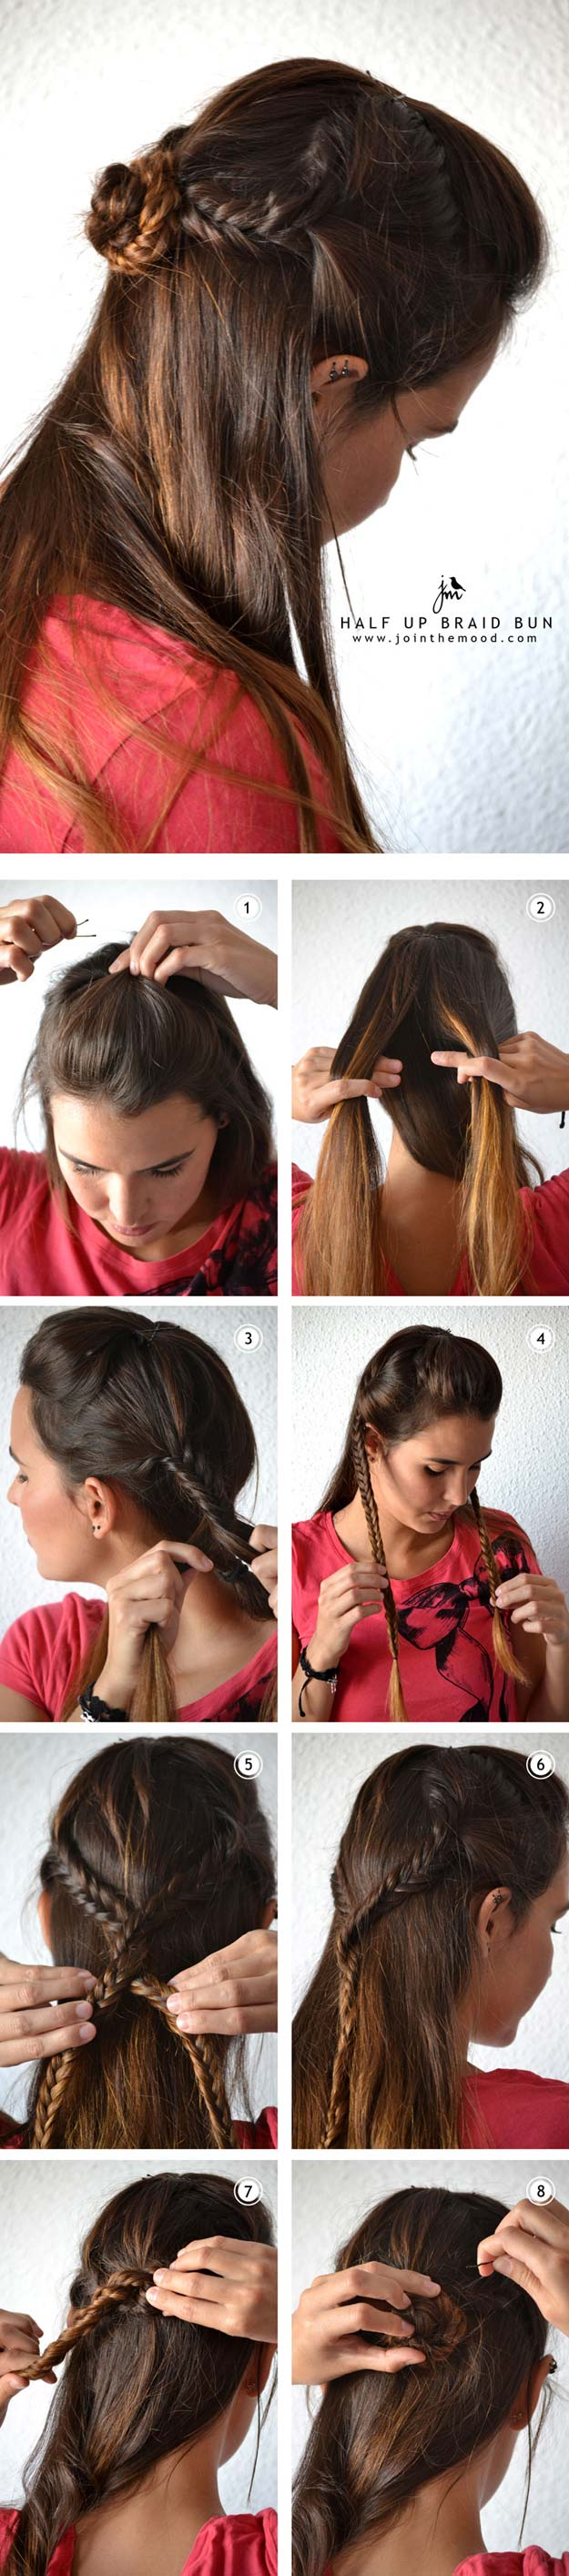 Best Hairstyles for Long Hair - Half Bun Braid - Step by Step Tutorials for Easy Curls, Updo, Half Up, Braids and Lazy Girl Looks. Prom Ideas, Special Occasion Hair and Braiding Instructions for Teens, Teenagers and Adults, Women and Girls http://diyprojectsforteens.com/best-hairstyles-long-hair